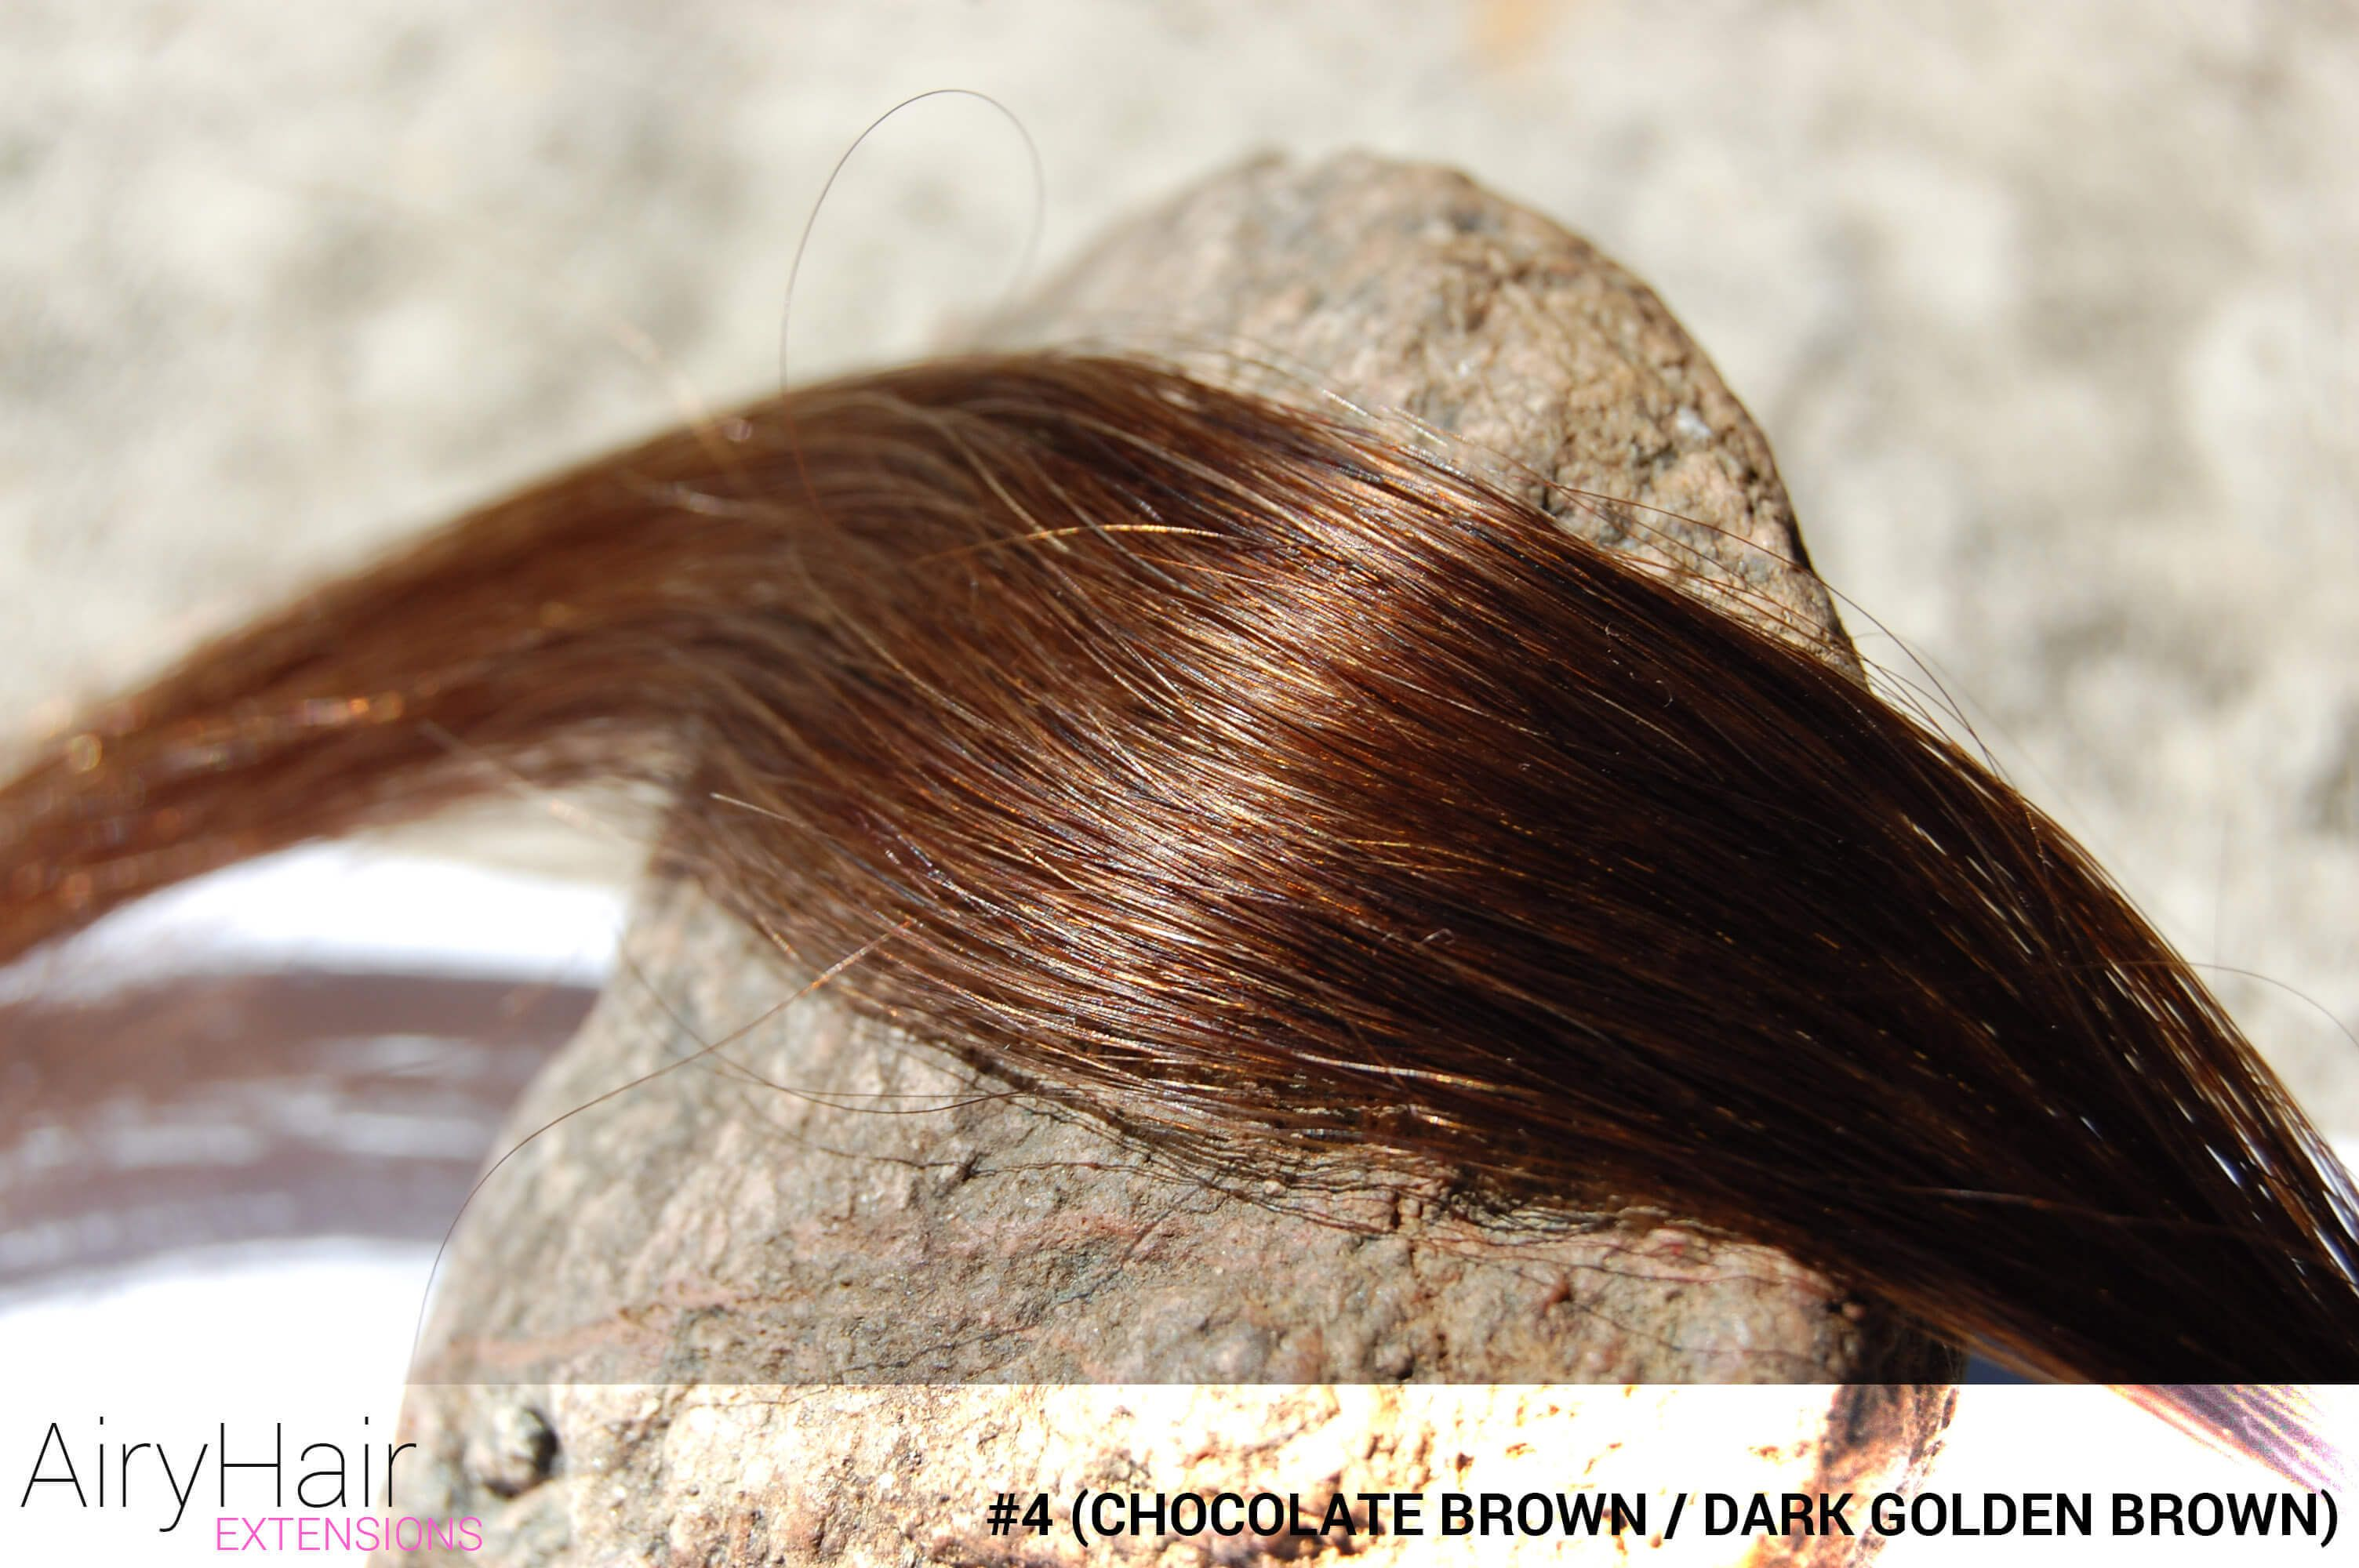 4 chocolate brown golden brown hair color a really dark hair 4 chocolate brown golden brown hair color a really dark hair color which nvjuhfo Choice Image